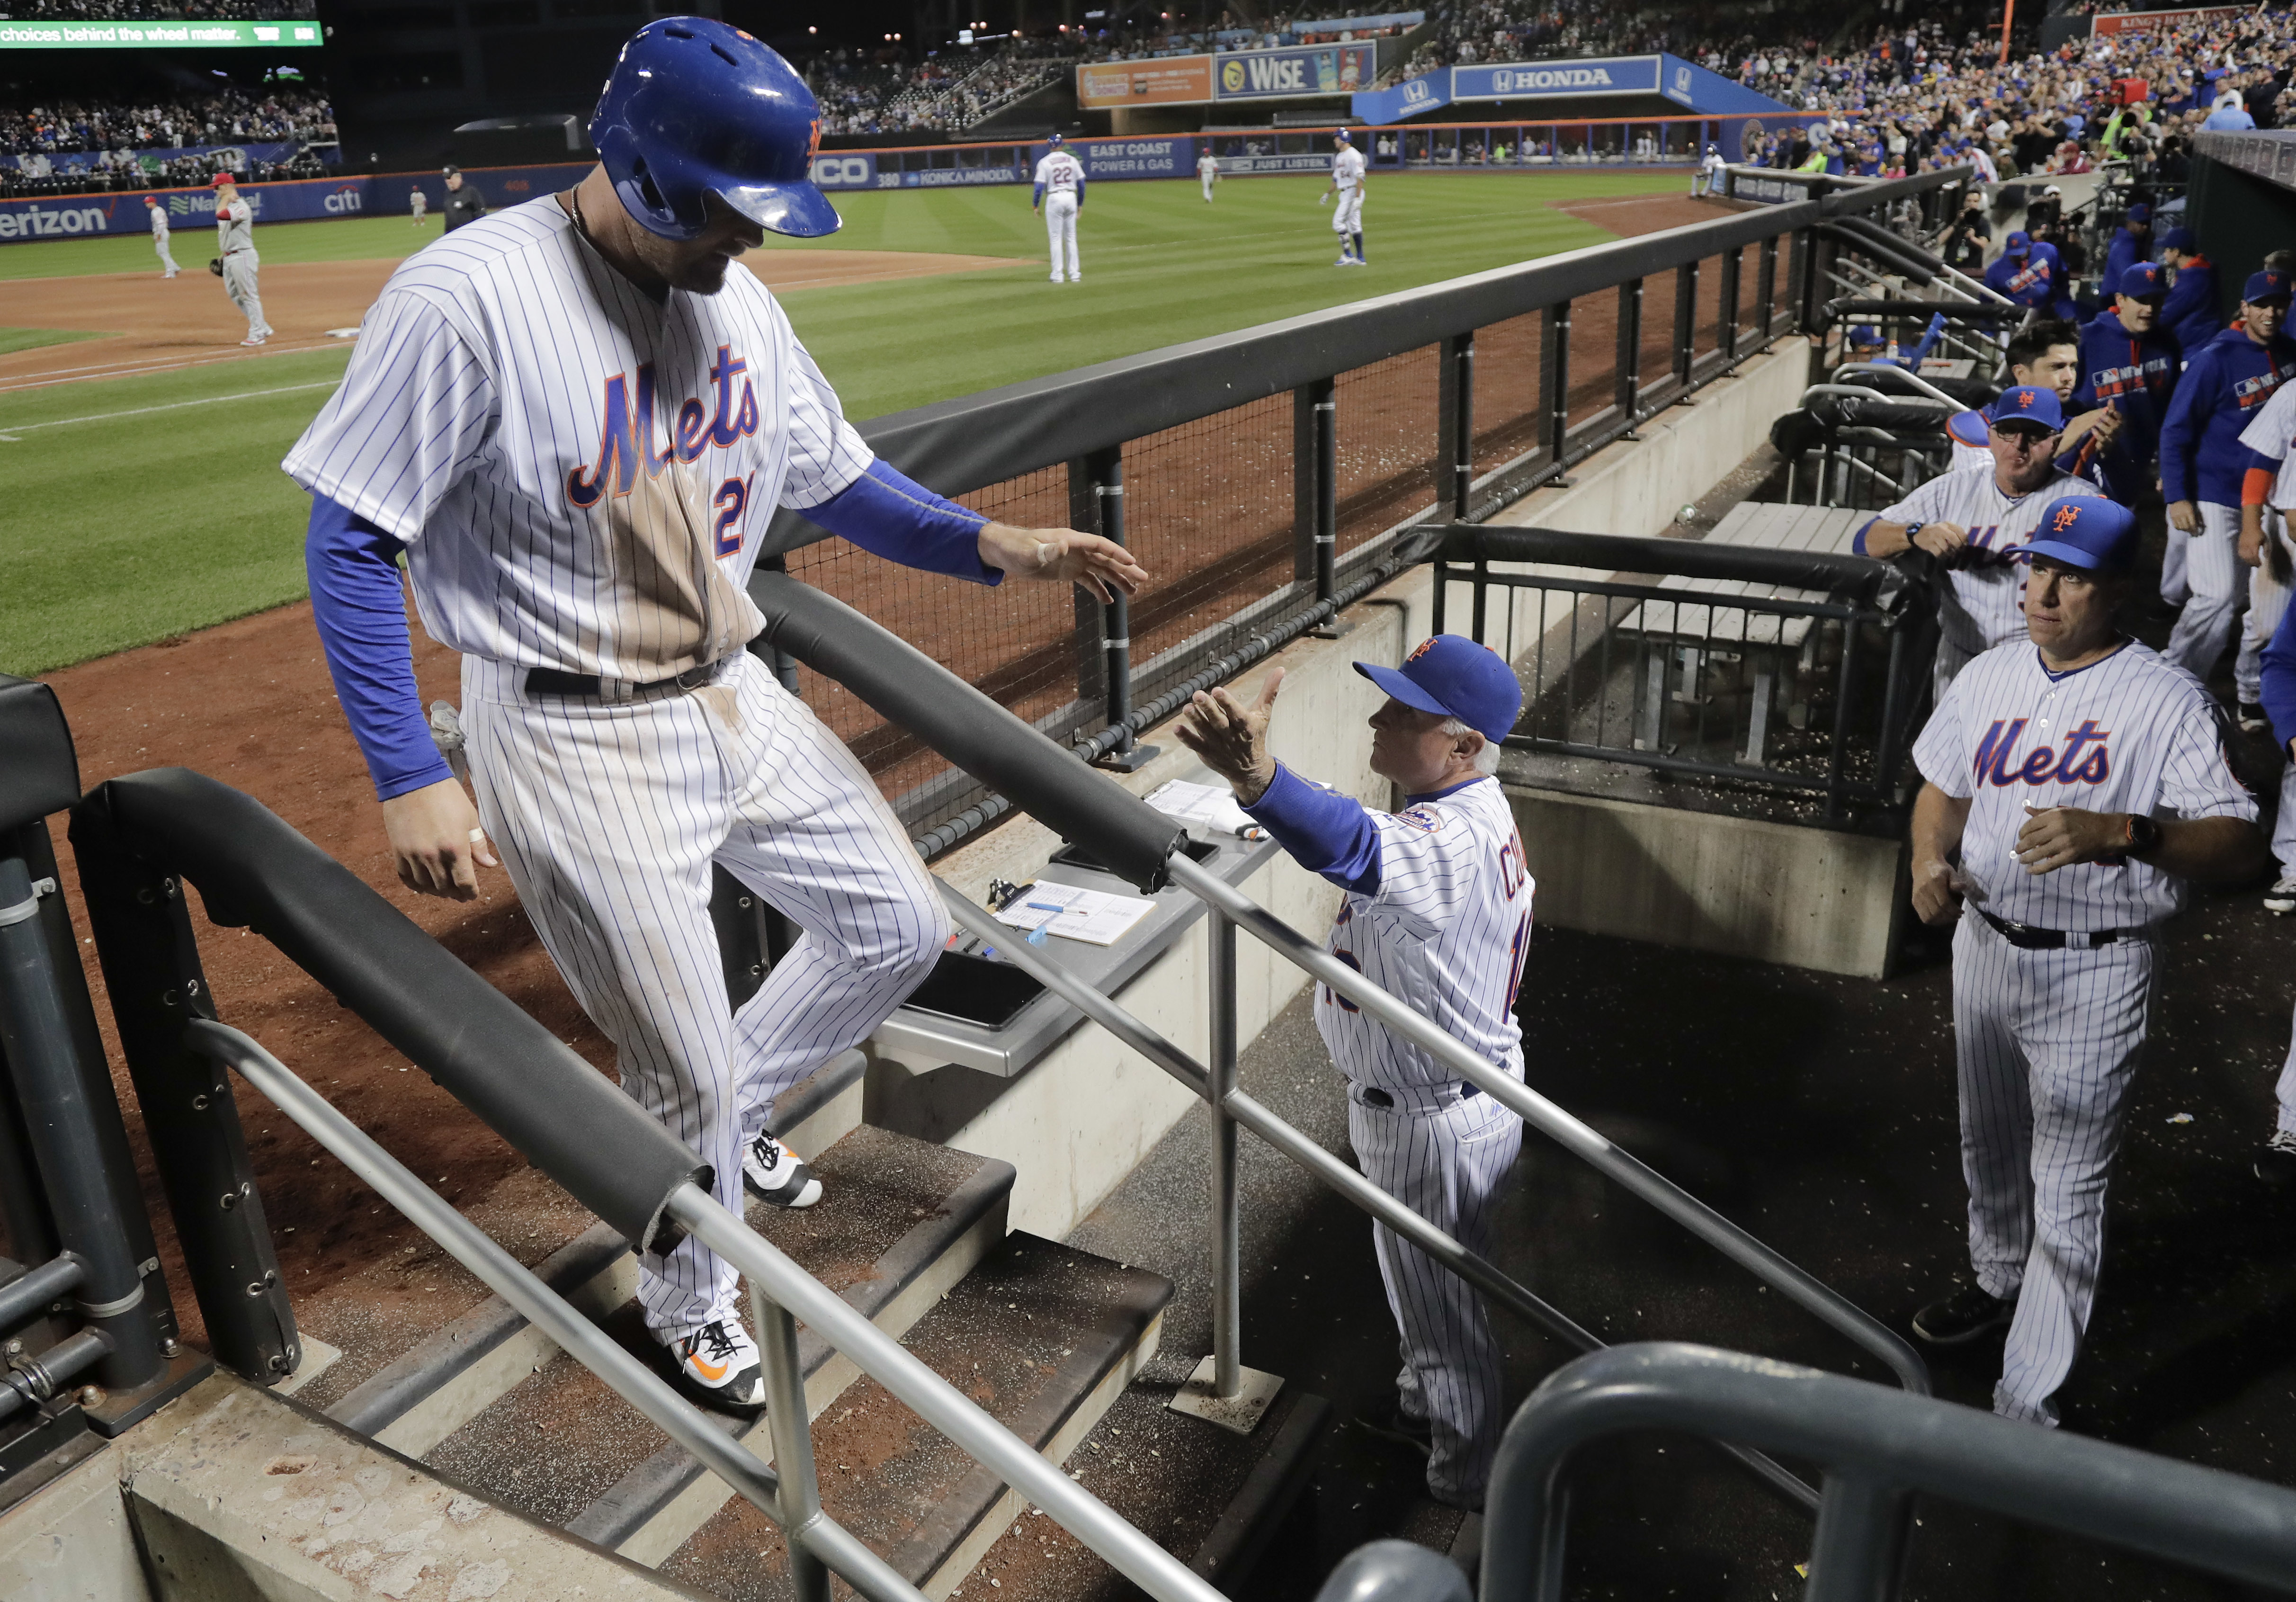 New York Mets' Lucas Duda (21) is greeted in the dugout after scoring during the sixth inning of a baseball game against the Philadelphia Phillies, Saturday, Sept. 24, 2016, in New York. (AP Photo/Julie Jacobson)